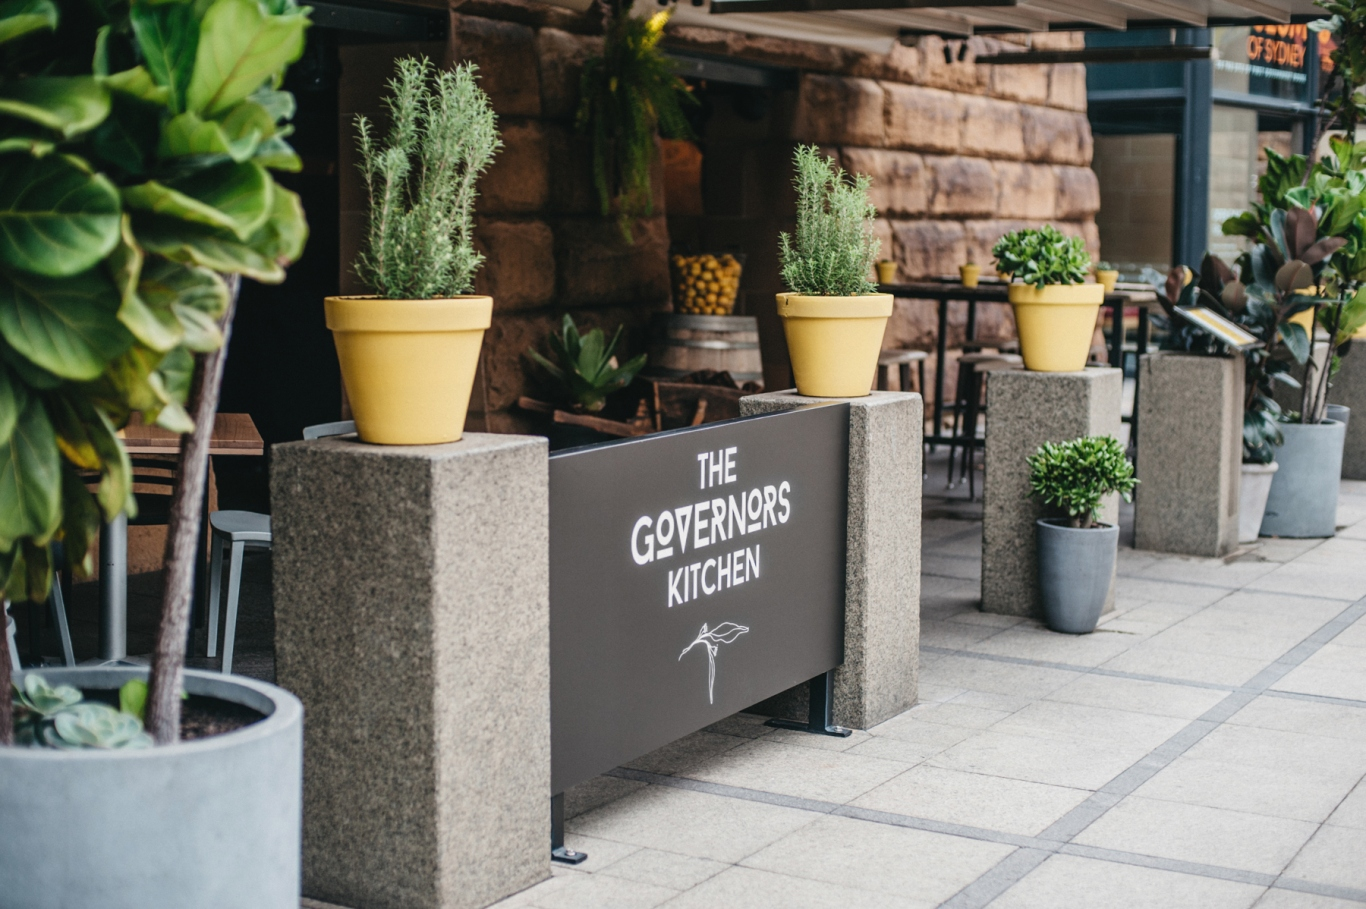 Exterior of cafe with seating and planter boxes.